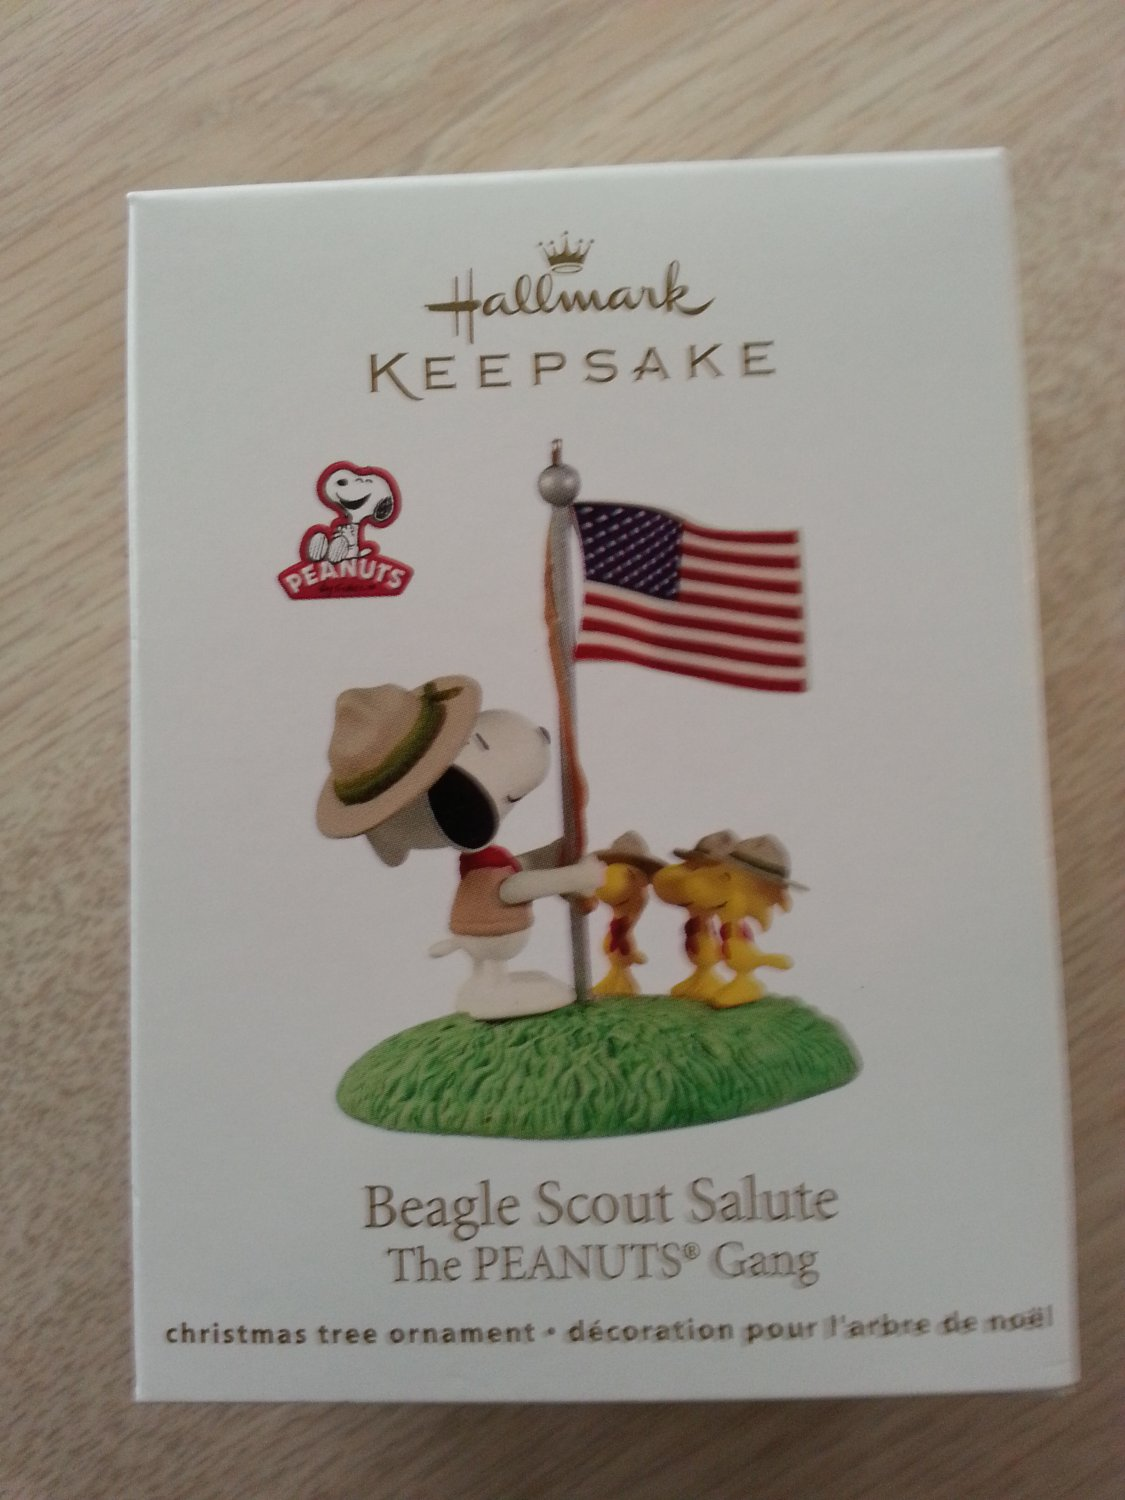 Hallmark The Peanuts Gang Beagle Scout Salute Ornament From 2012